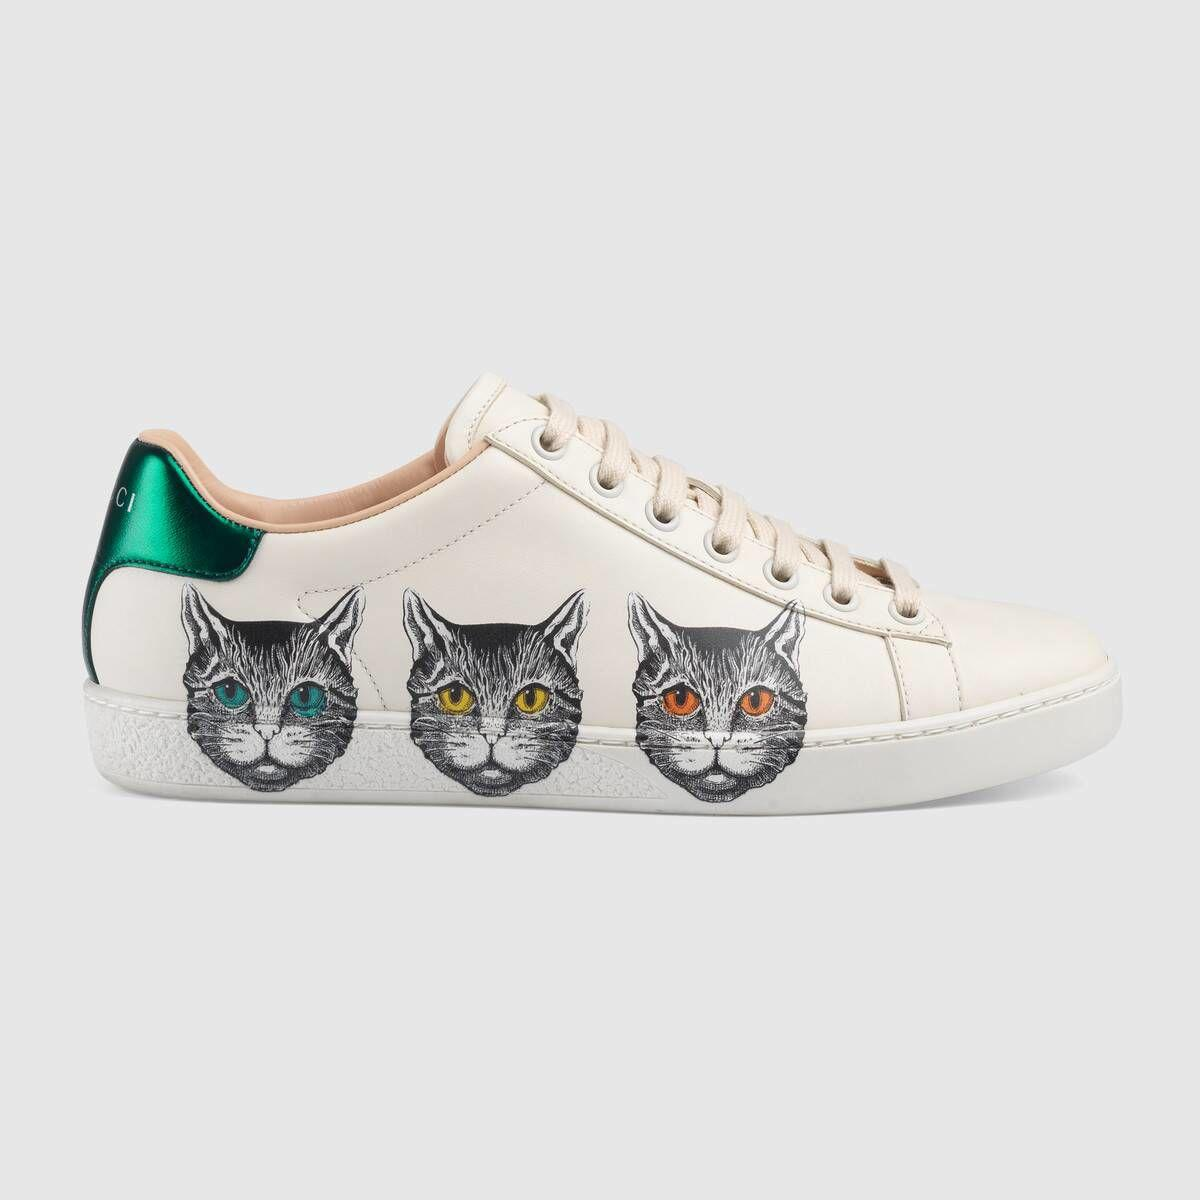 577147_A38V0_9090_001_100_0000_Light-Womens-Ace-sneaker-with-Mystic-Cat.jpg